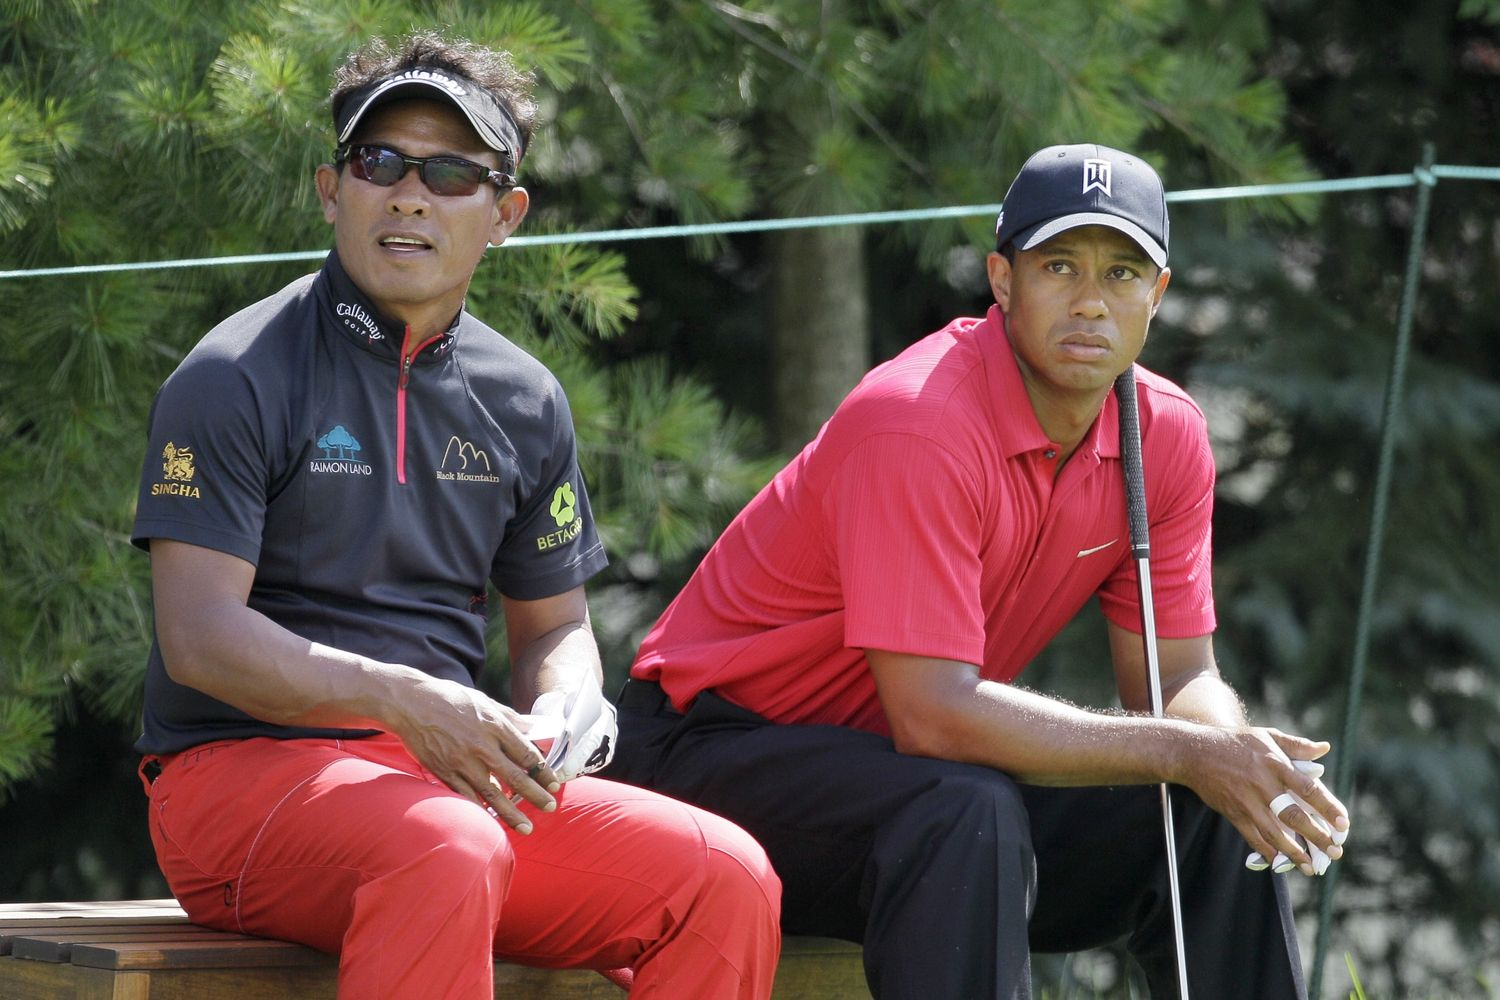 Tiger Woods Timeline: History of injuries, success and championships